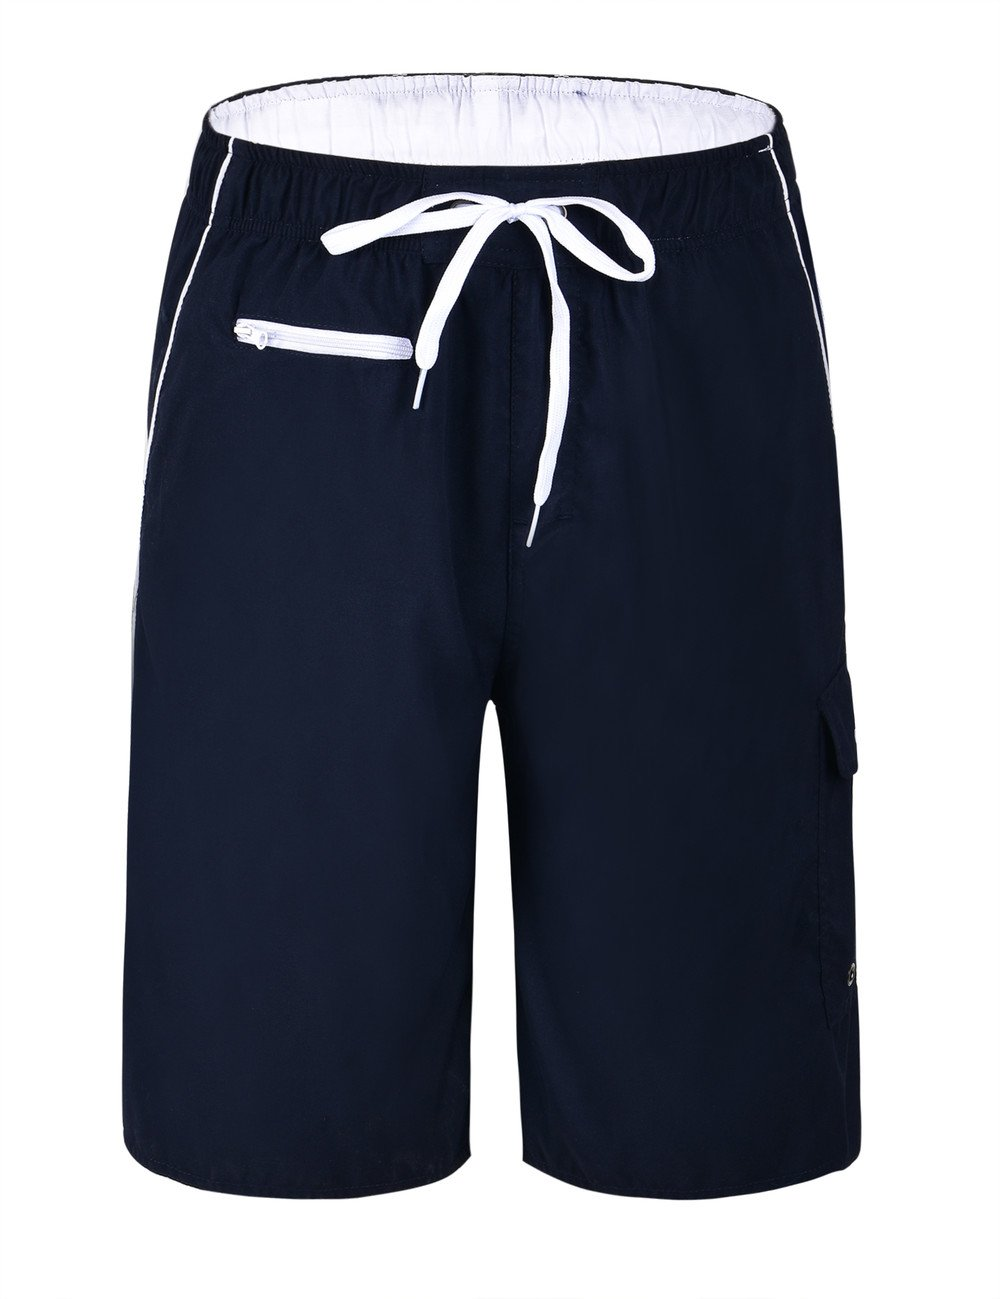 Unitop Men's Swim Trunks Quick Dry Hawaiian Assorted Surf Shorts Navy&White 38 by Unitop